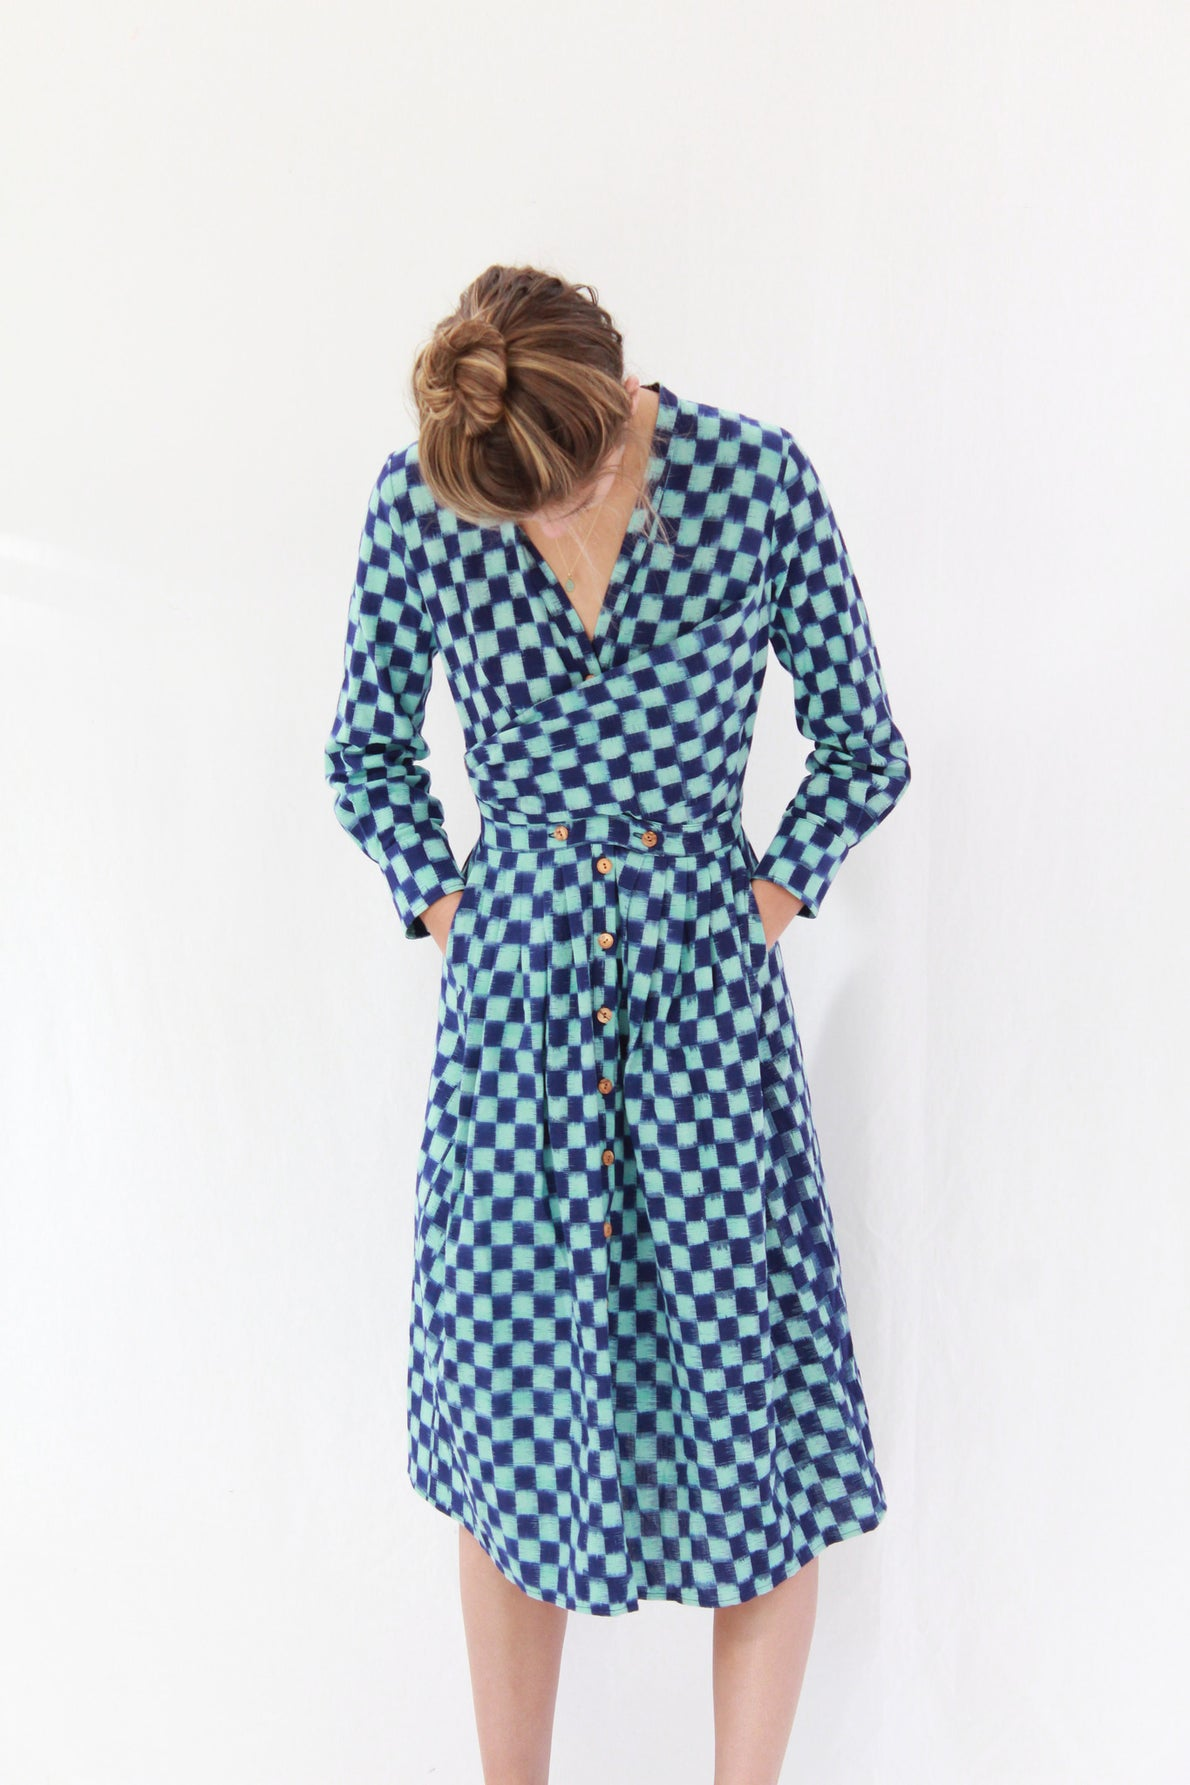 Beklina Heinui Octave Dress Ikat